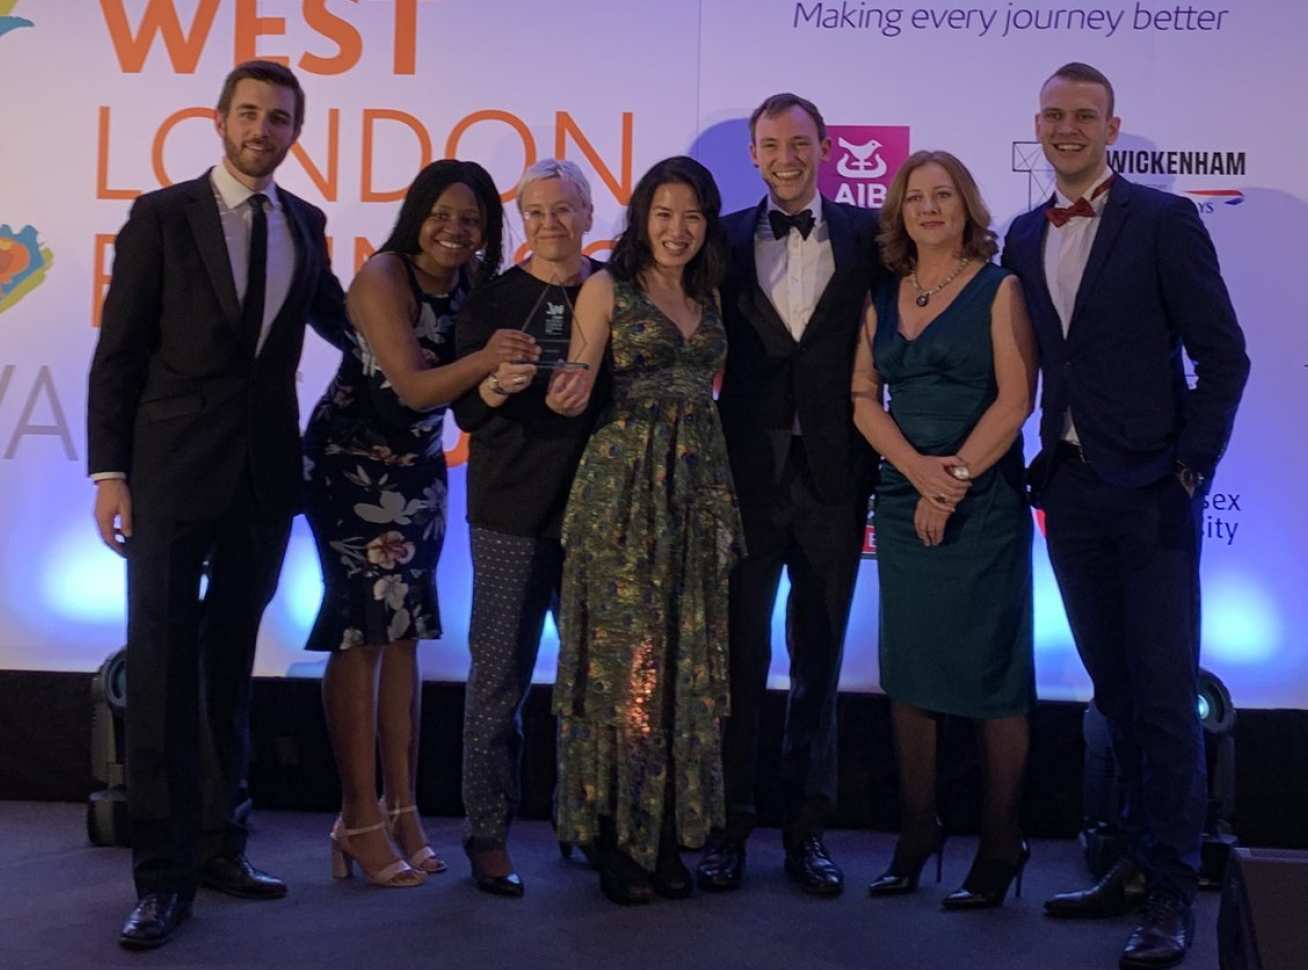 The Customem team collecting their West London Business Award